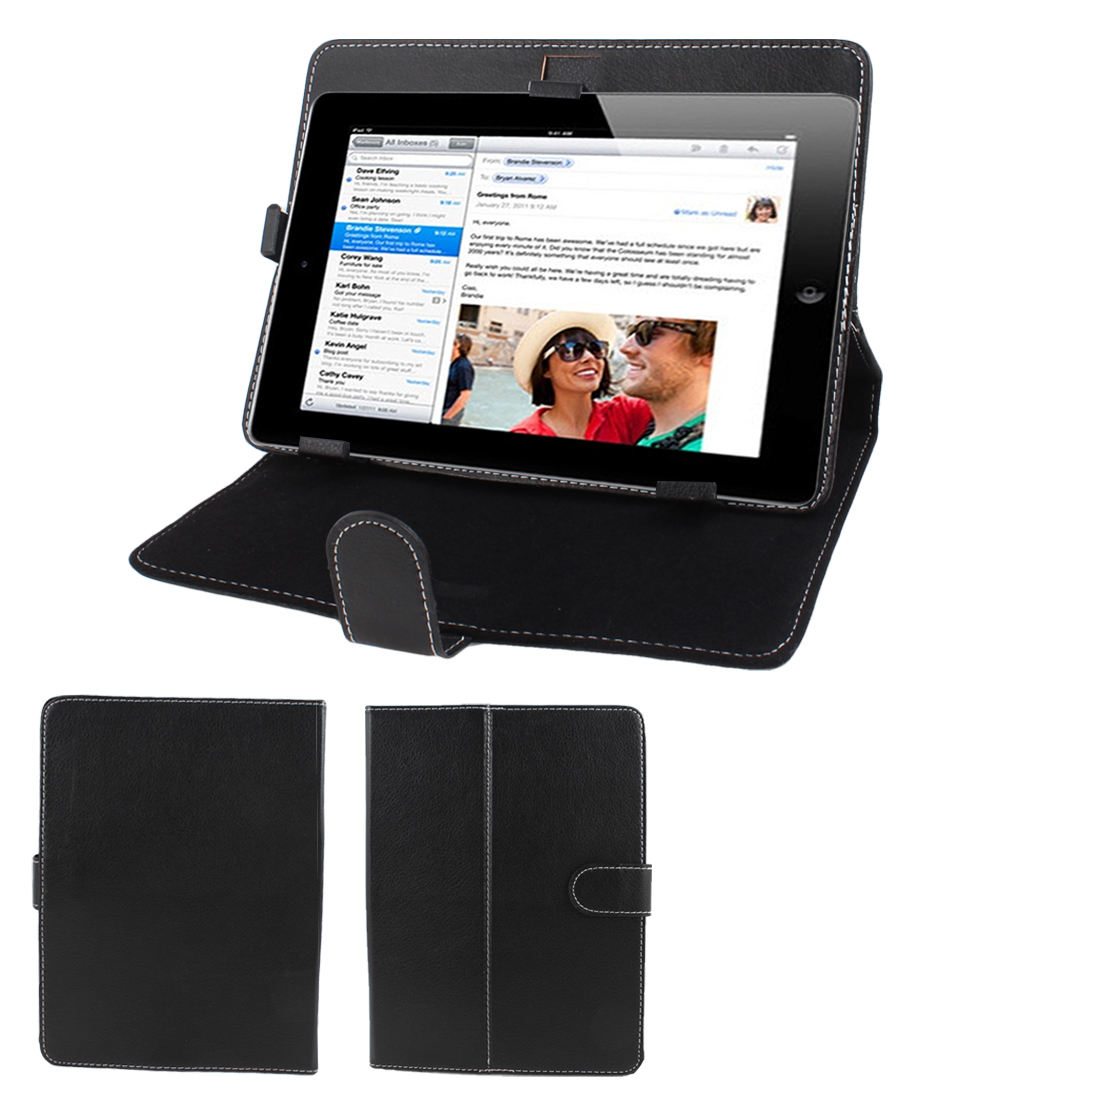 "Black Stitched Faux Leather Magnetic Stand Case Cover for 8"" Tablet PC"